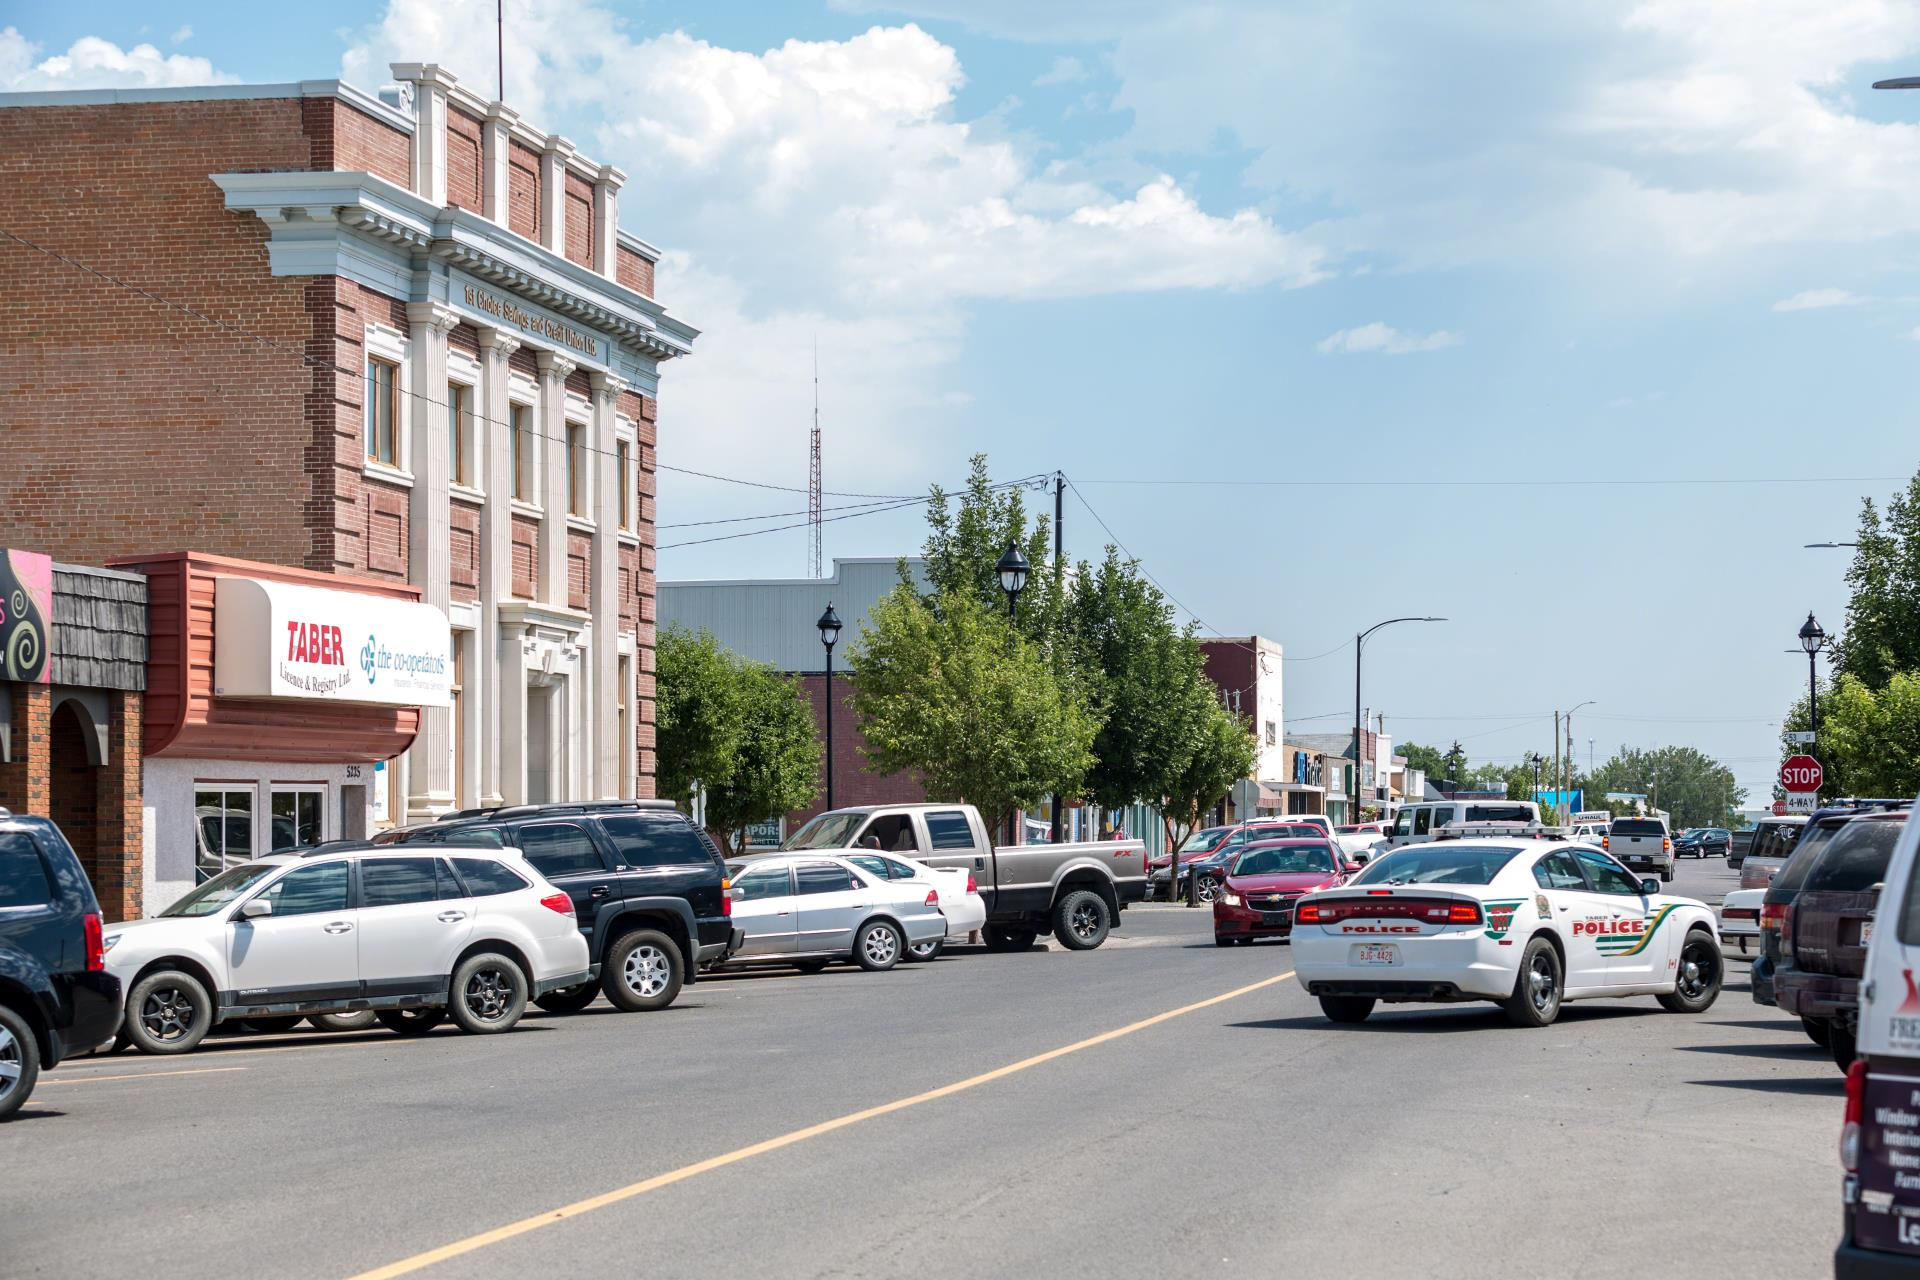 Free Downtown WiFi Pilot Project Now Live in Taber